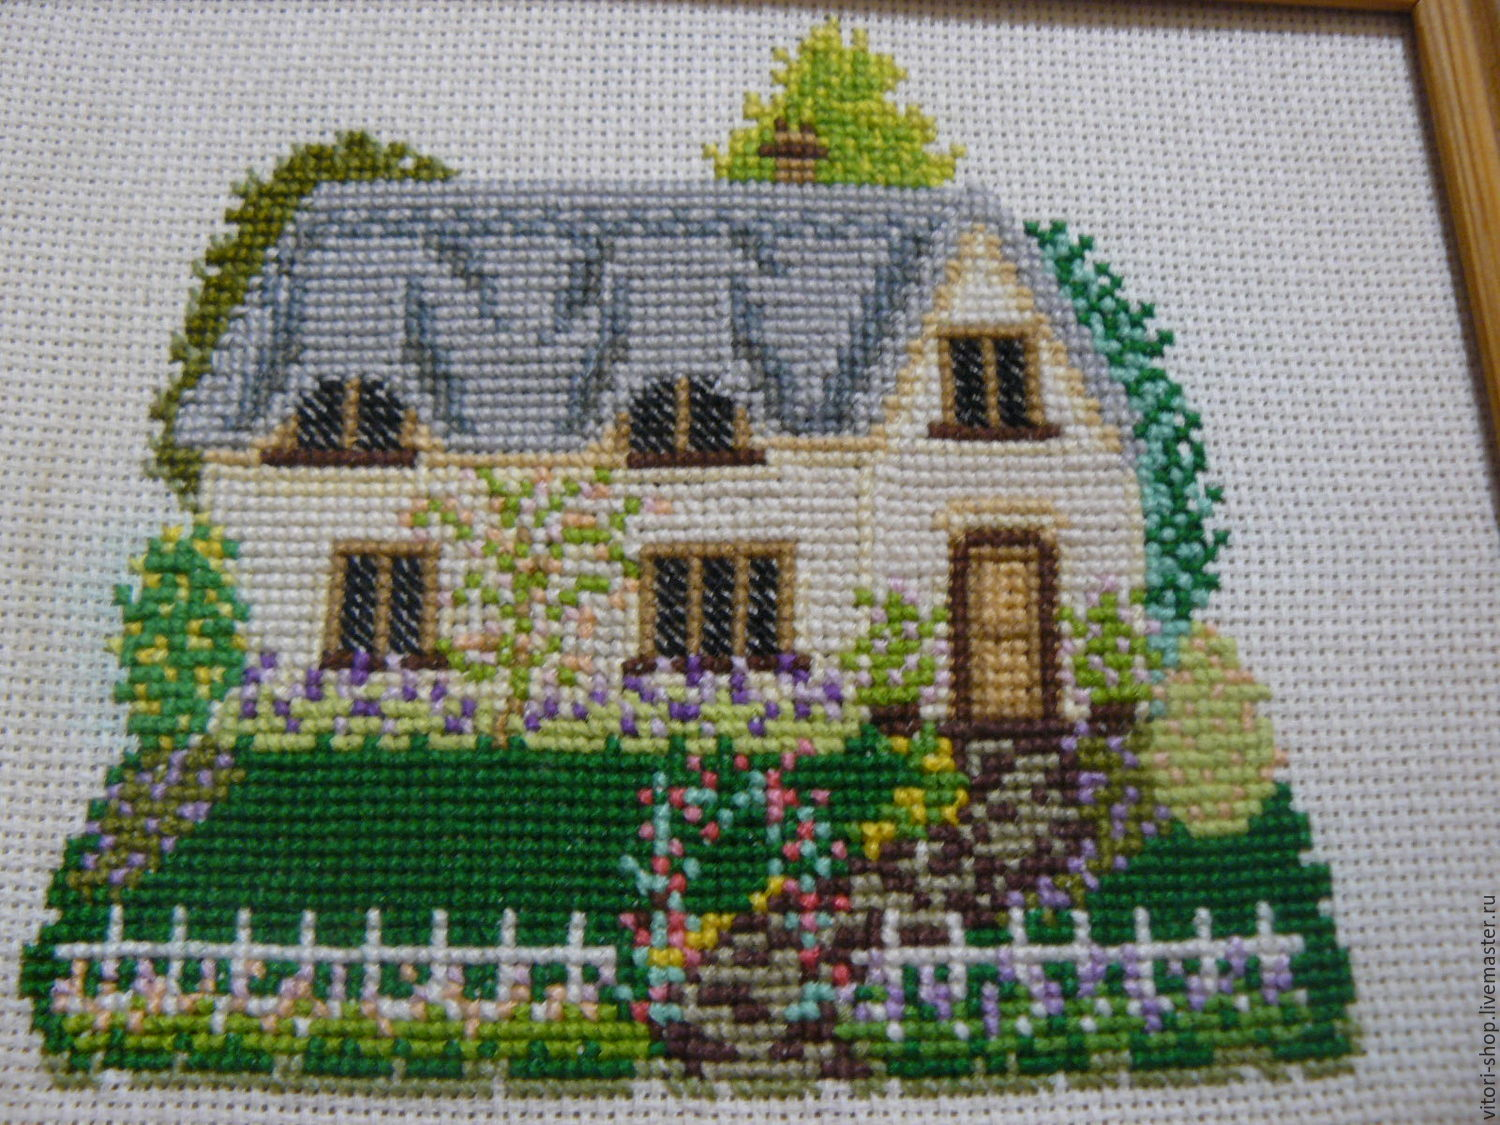 Embroidered picture ' house with a garden  ', Pictures, Vyborg,  Фото №1